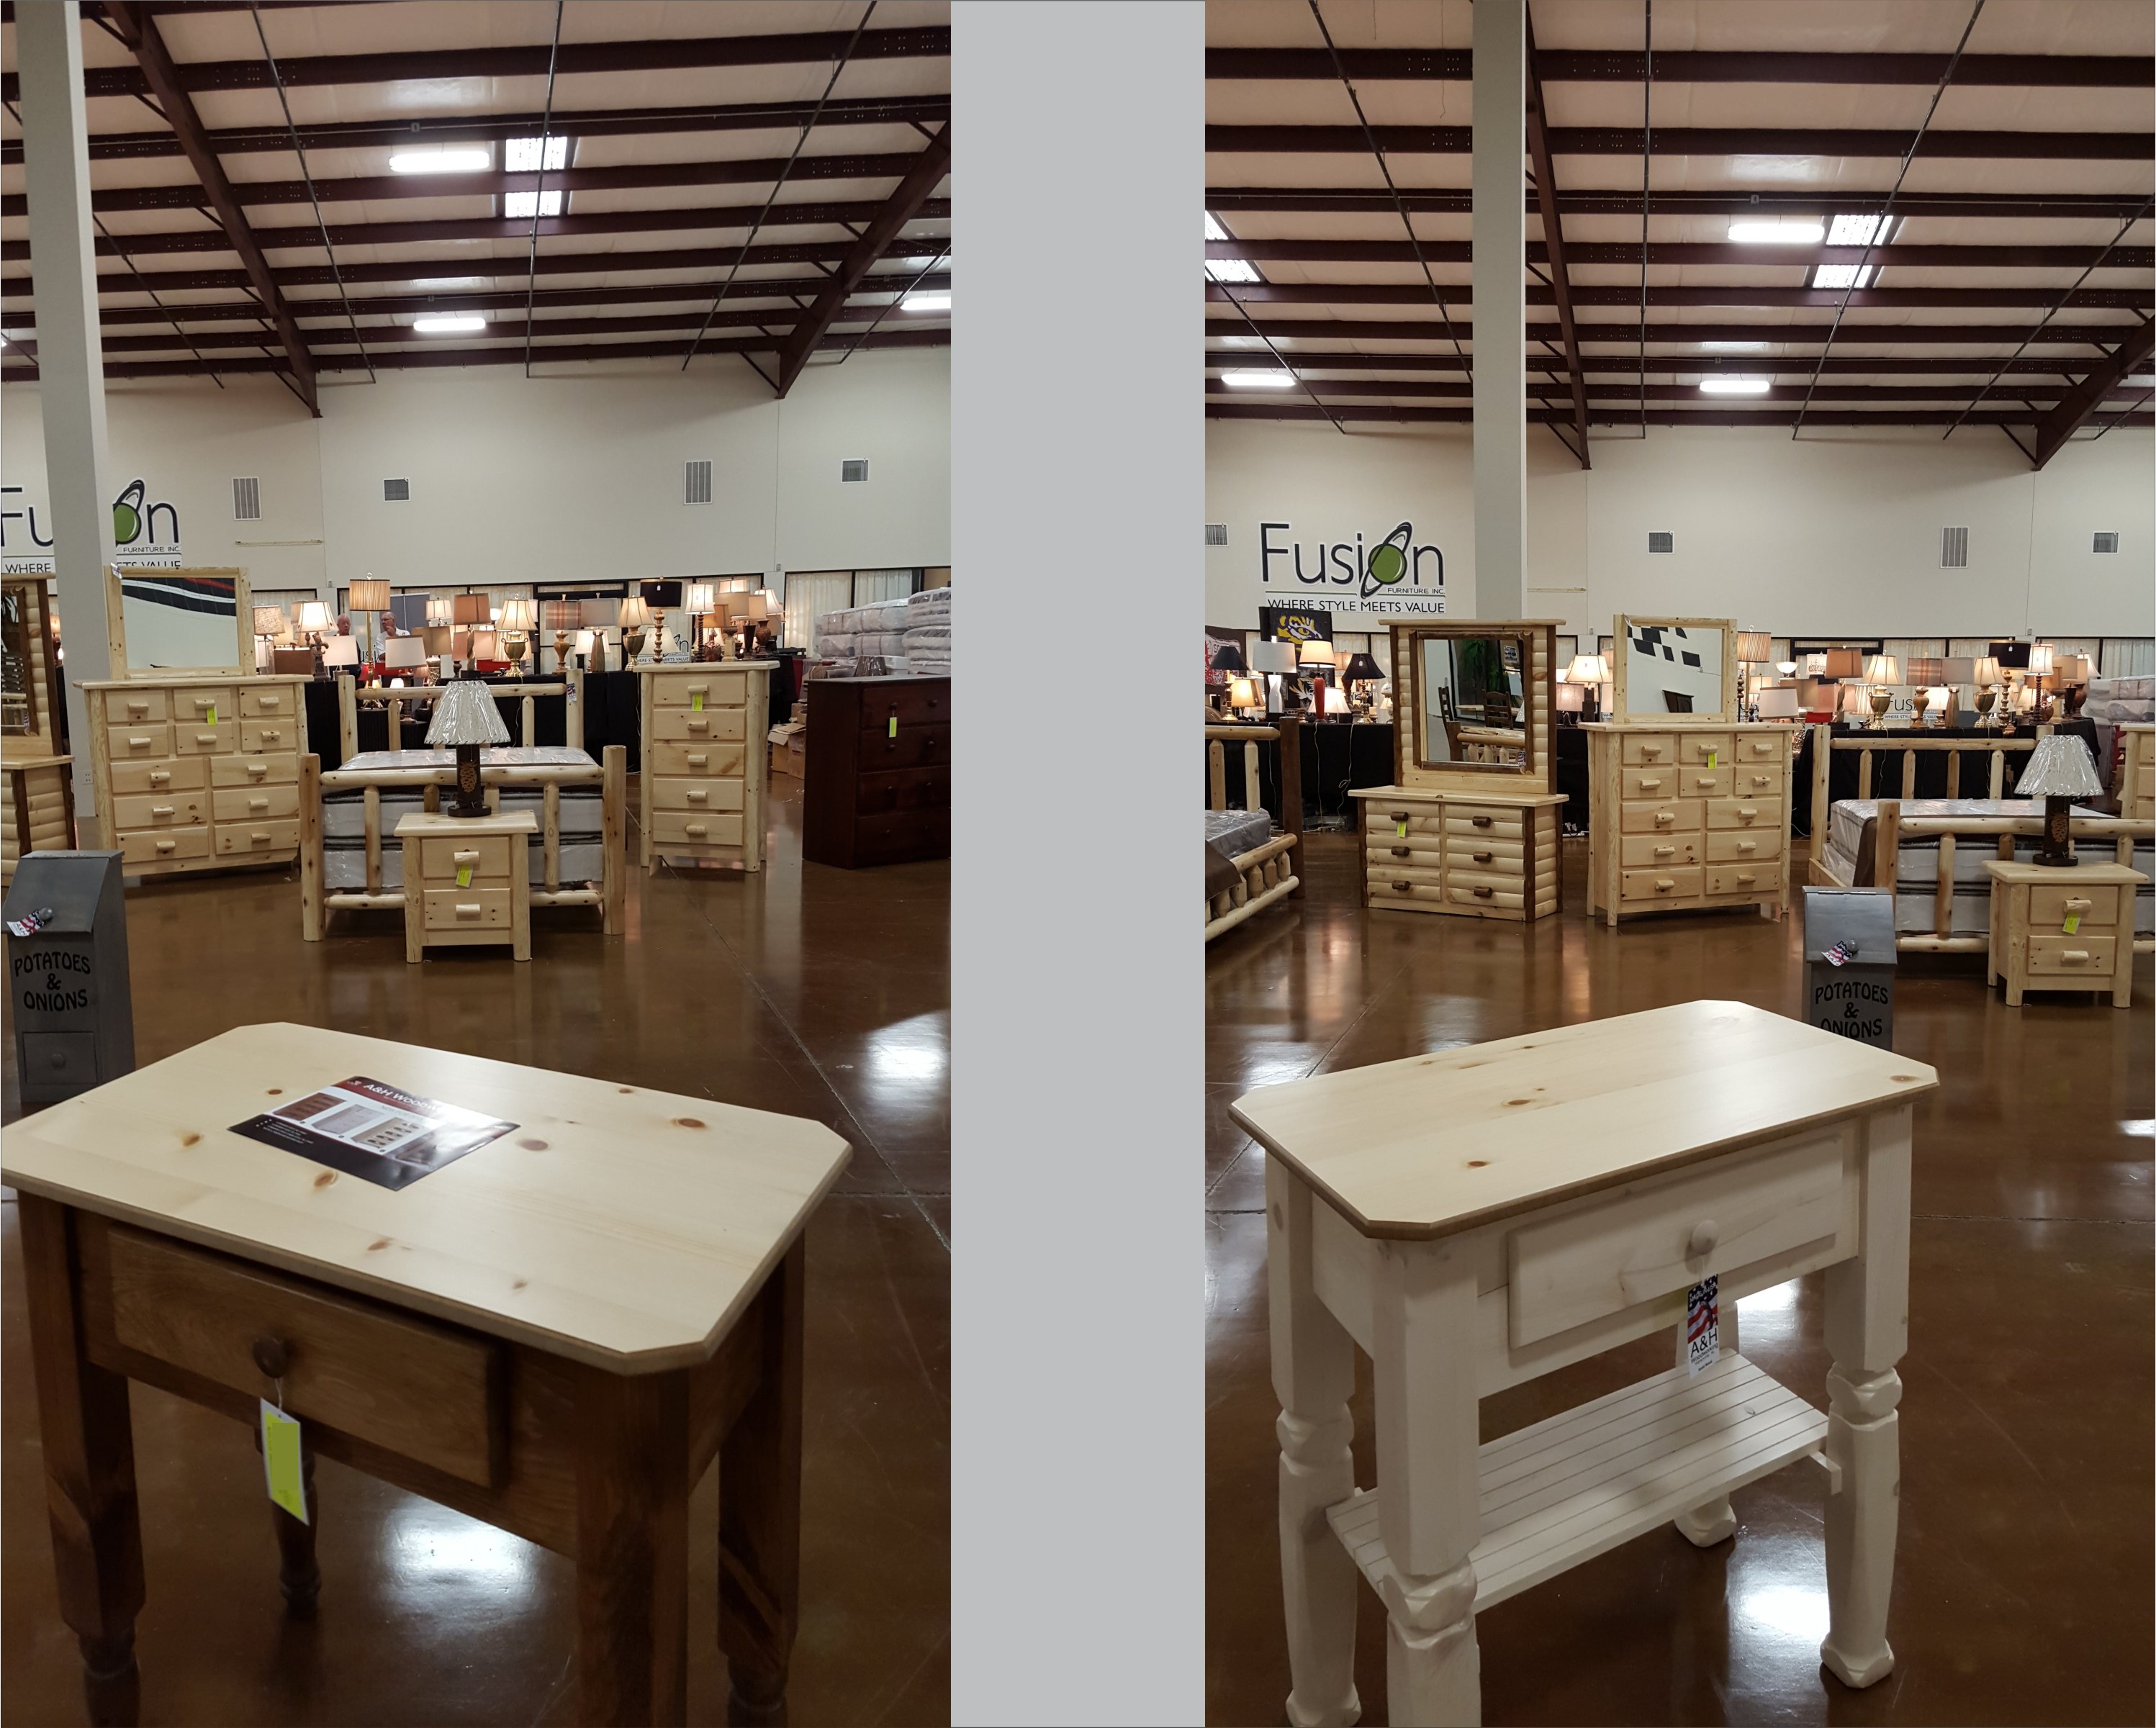 woodworking shows in illinois | Local Woodworking Clubs